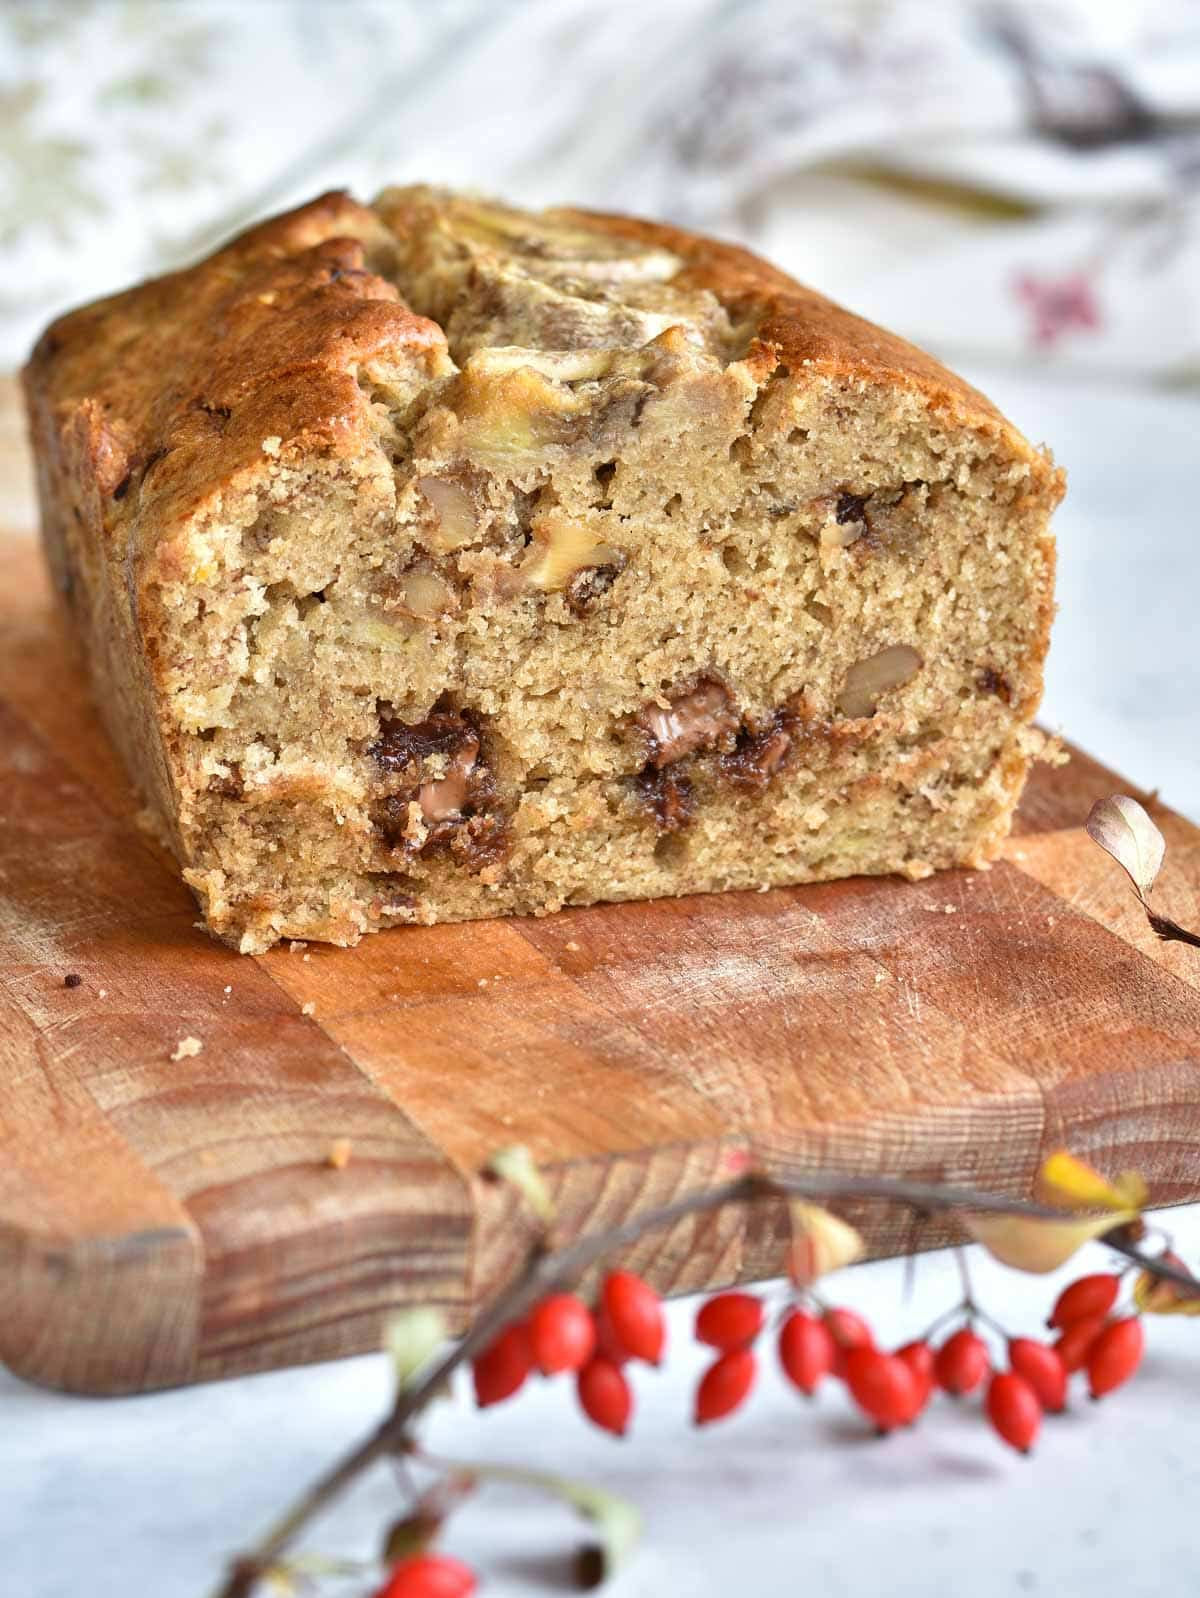 banana bread with chocolate and nuts cut in half on a chopping board